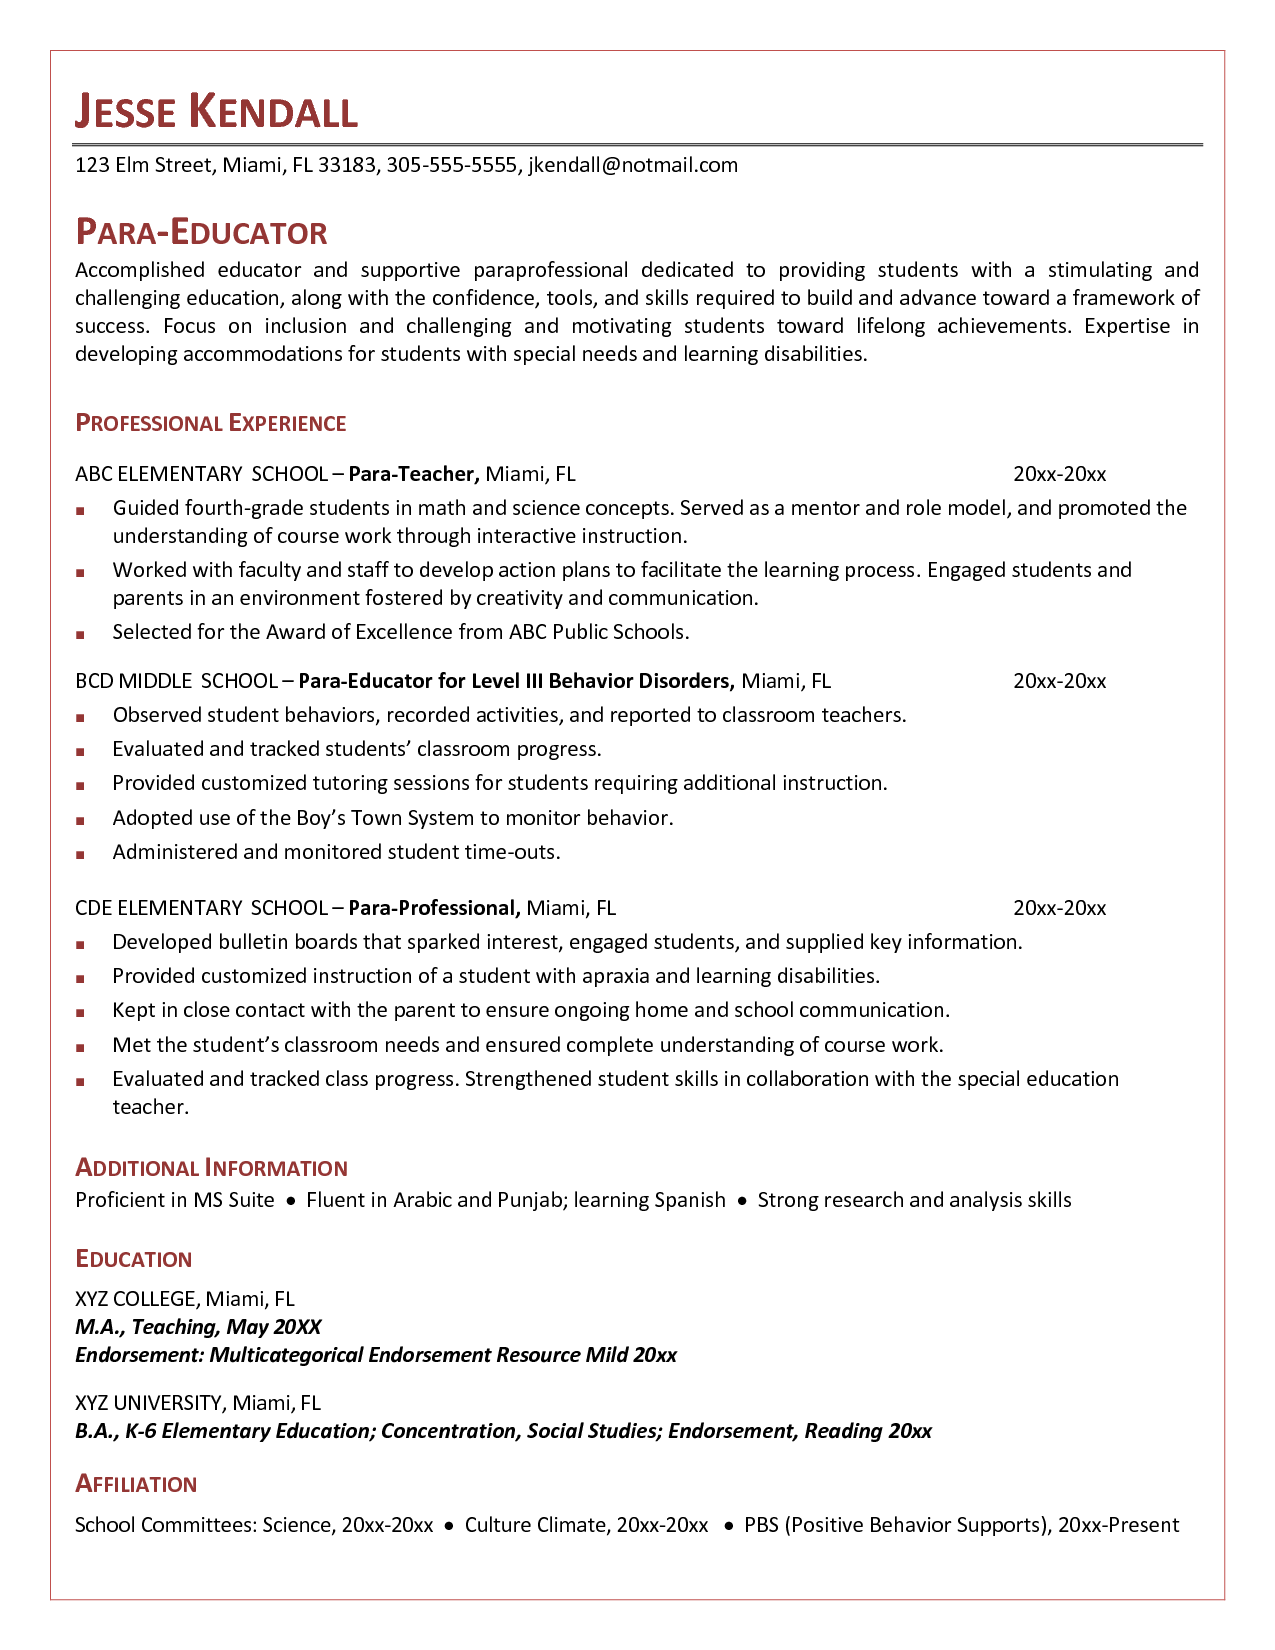 cover letter for paraeducator example httpwwwresumecareerinfo resume cover letter templateletter - Paraeducator Resume Sample